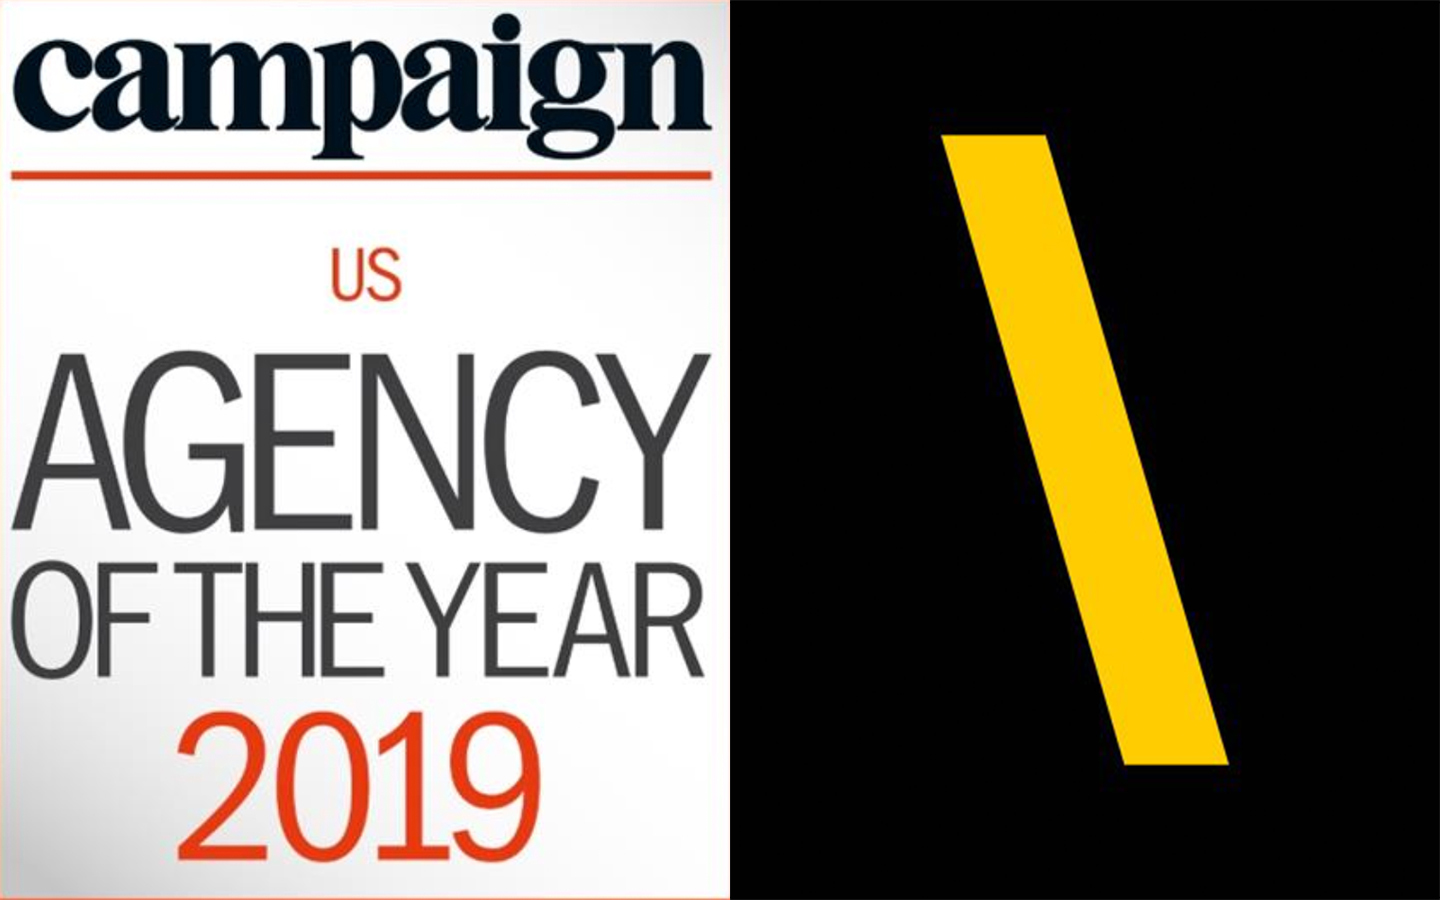 Campaign US Reveals Agency of the Year 2019 Shortlisters Featuring TBWA